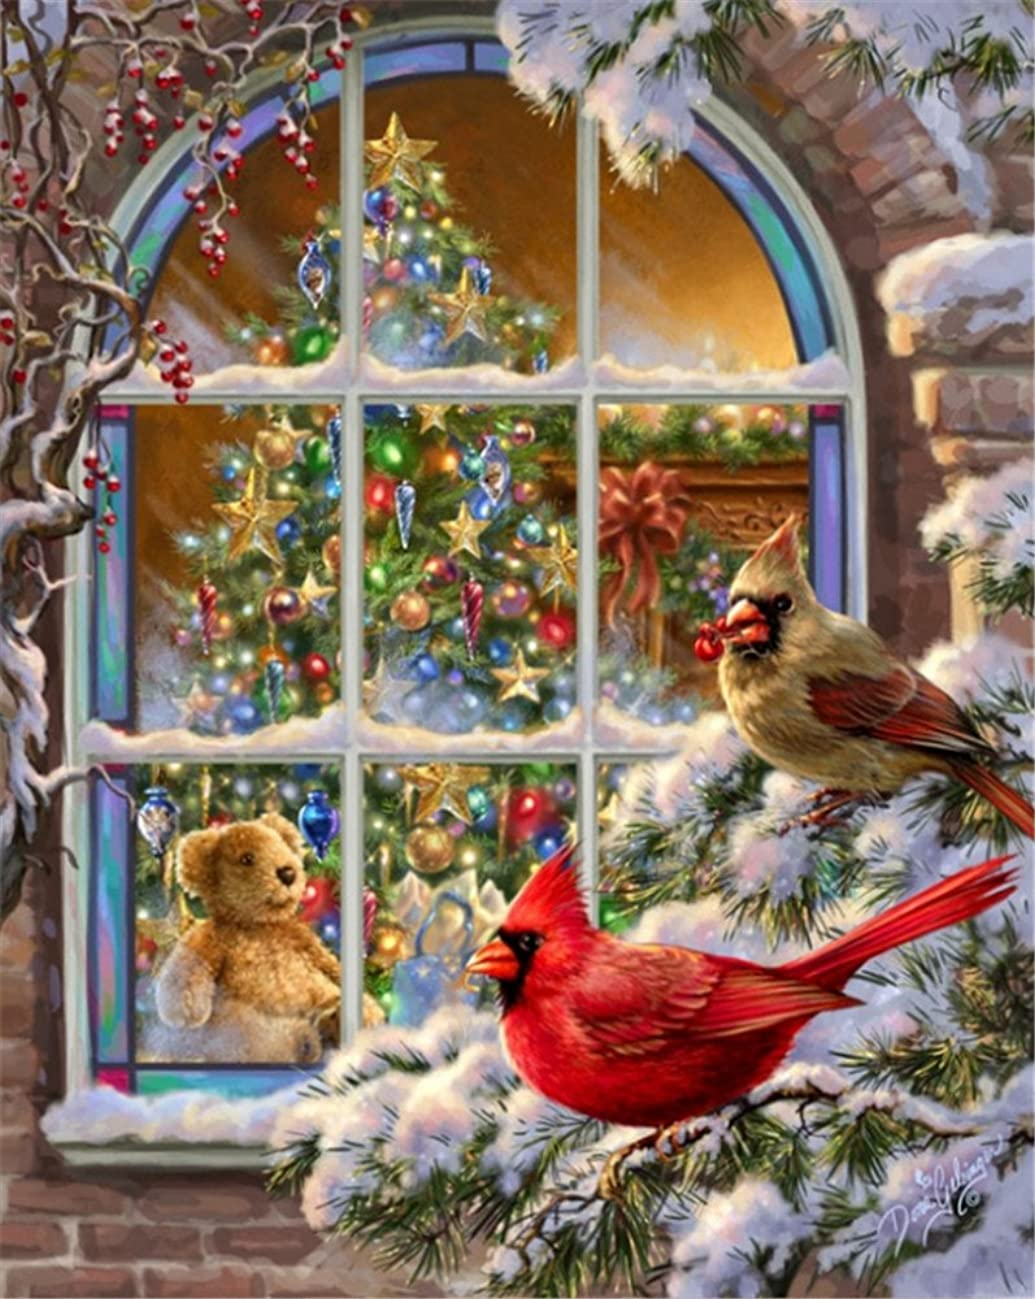 DIY Oil Painting Paint by Number Kit for Kids Adults Beginner 16x20 inch -Bird in Front of The Window,Drawing with Brushes Christmas Decor Decorations Gifts (Frame)